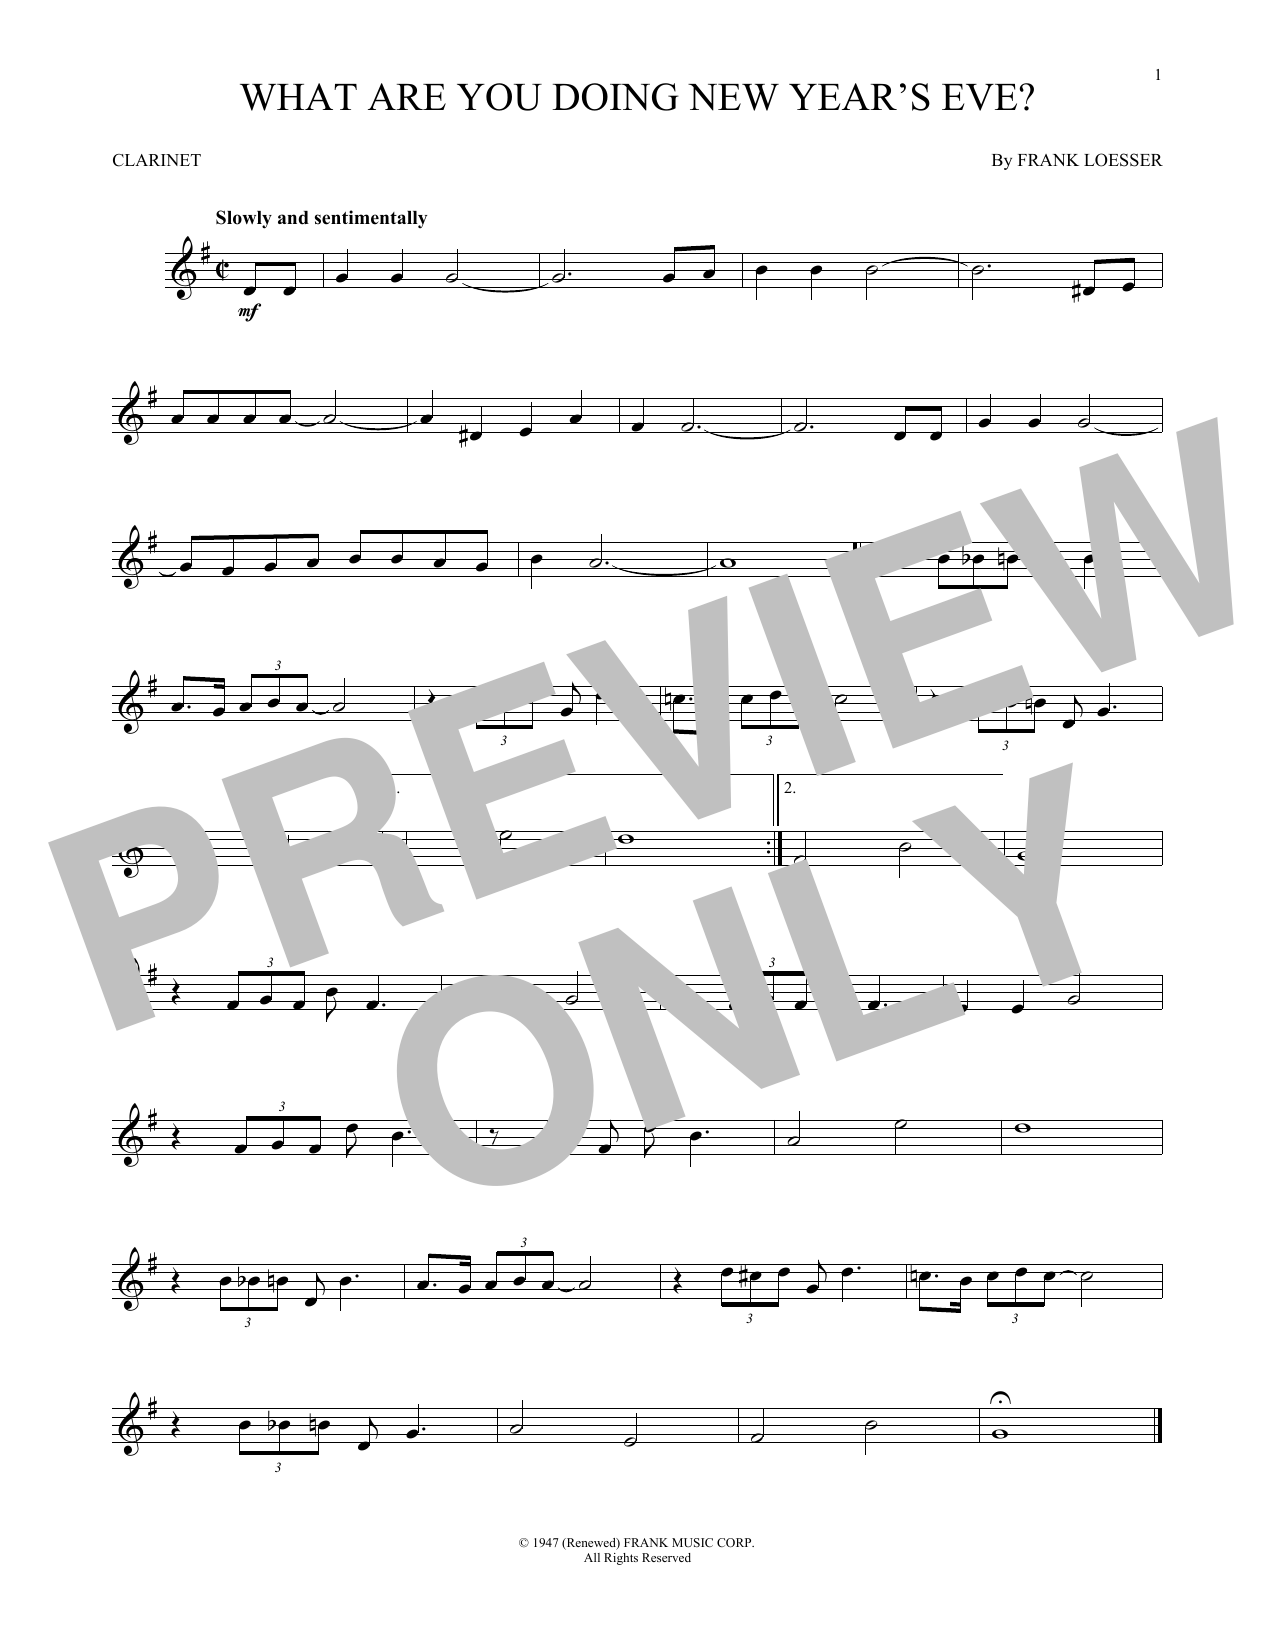 What Are You Doing New Year's Eve? (Clarinet Solo)